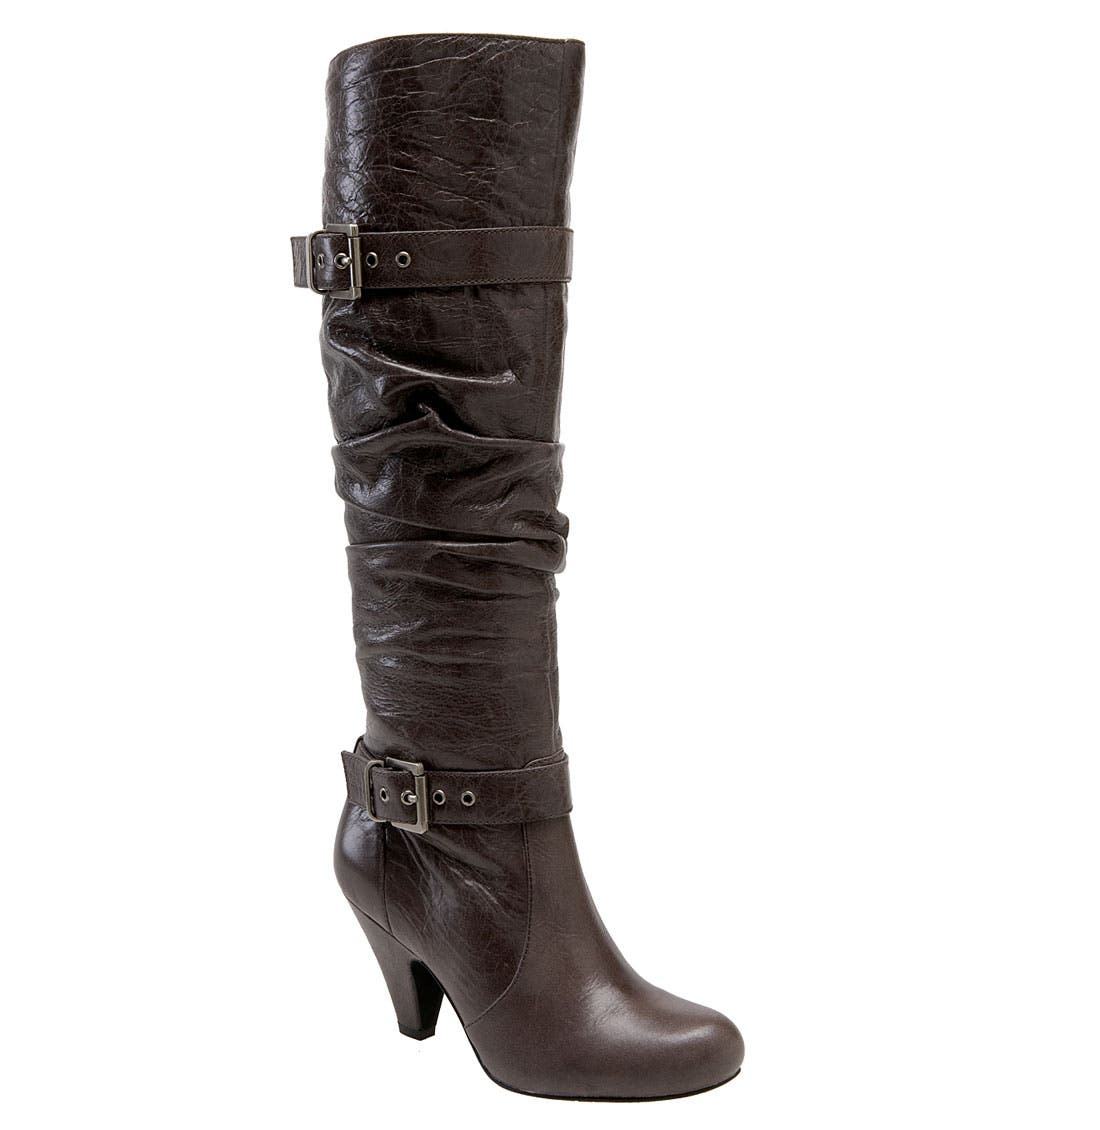 Alternate Image 1 Selected - Jessica Simpson 'Capry' Boot